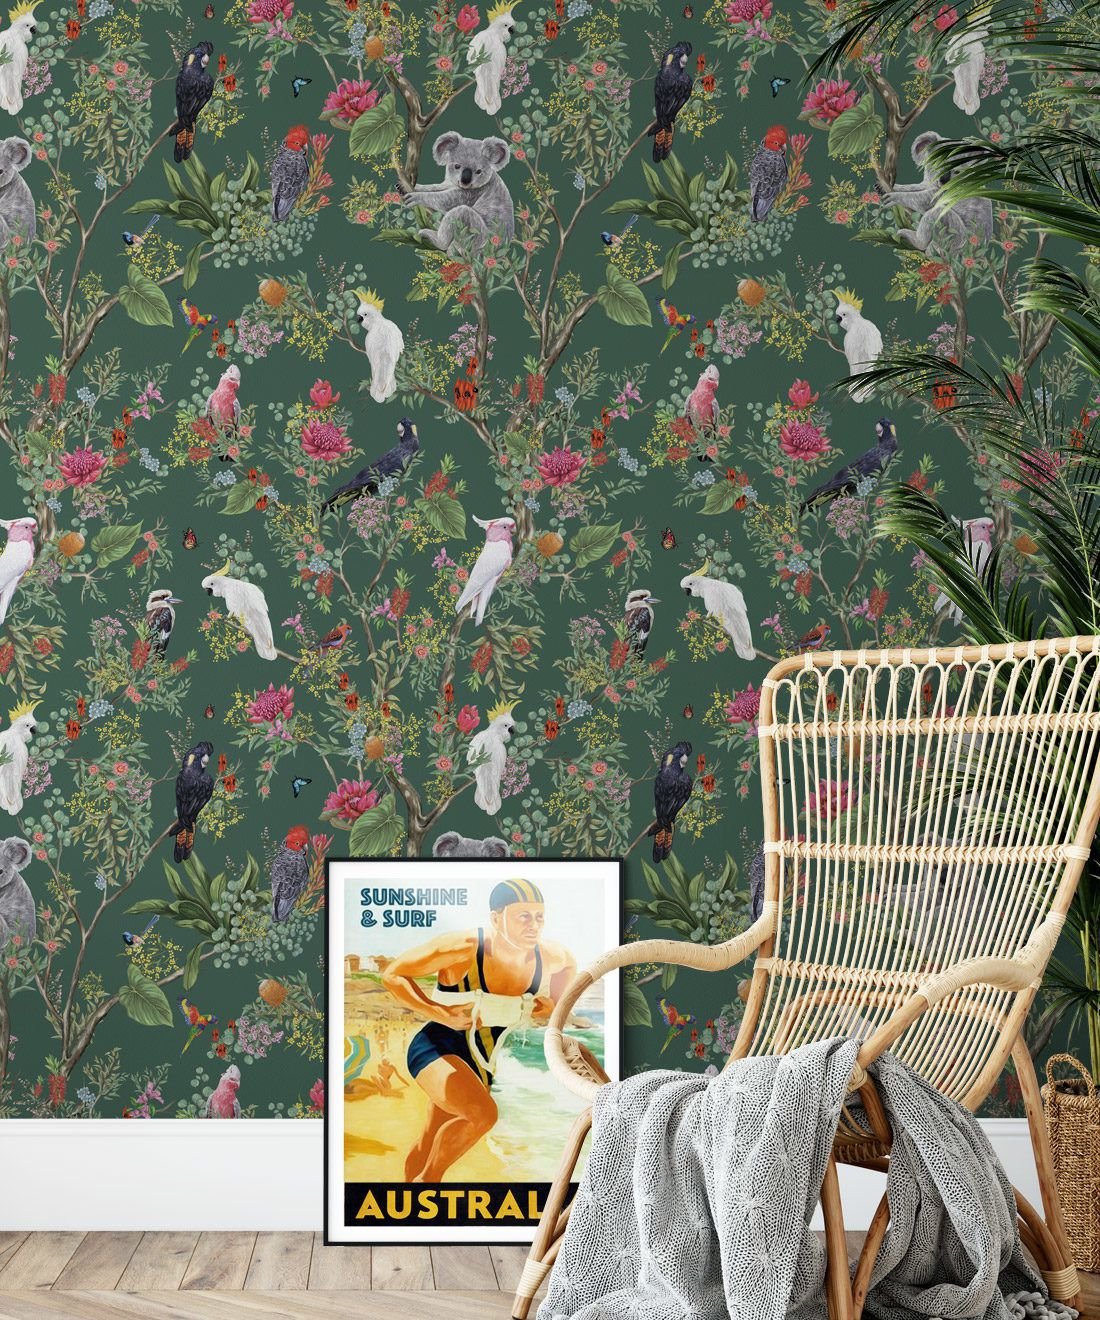 Australia Wallpaper • Cockatoos, Koalas, Parrots, Finches • Milton & King USA • Green Wallpaper Insitu